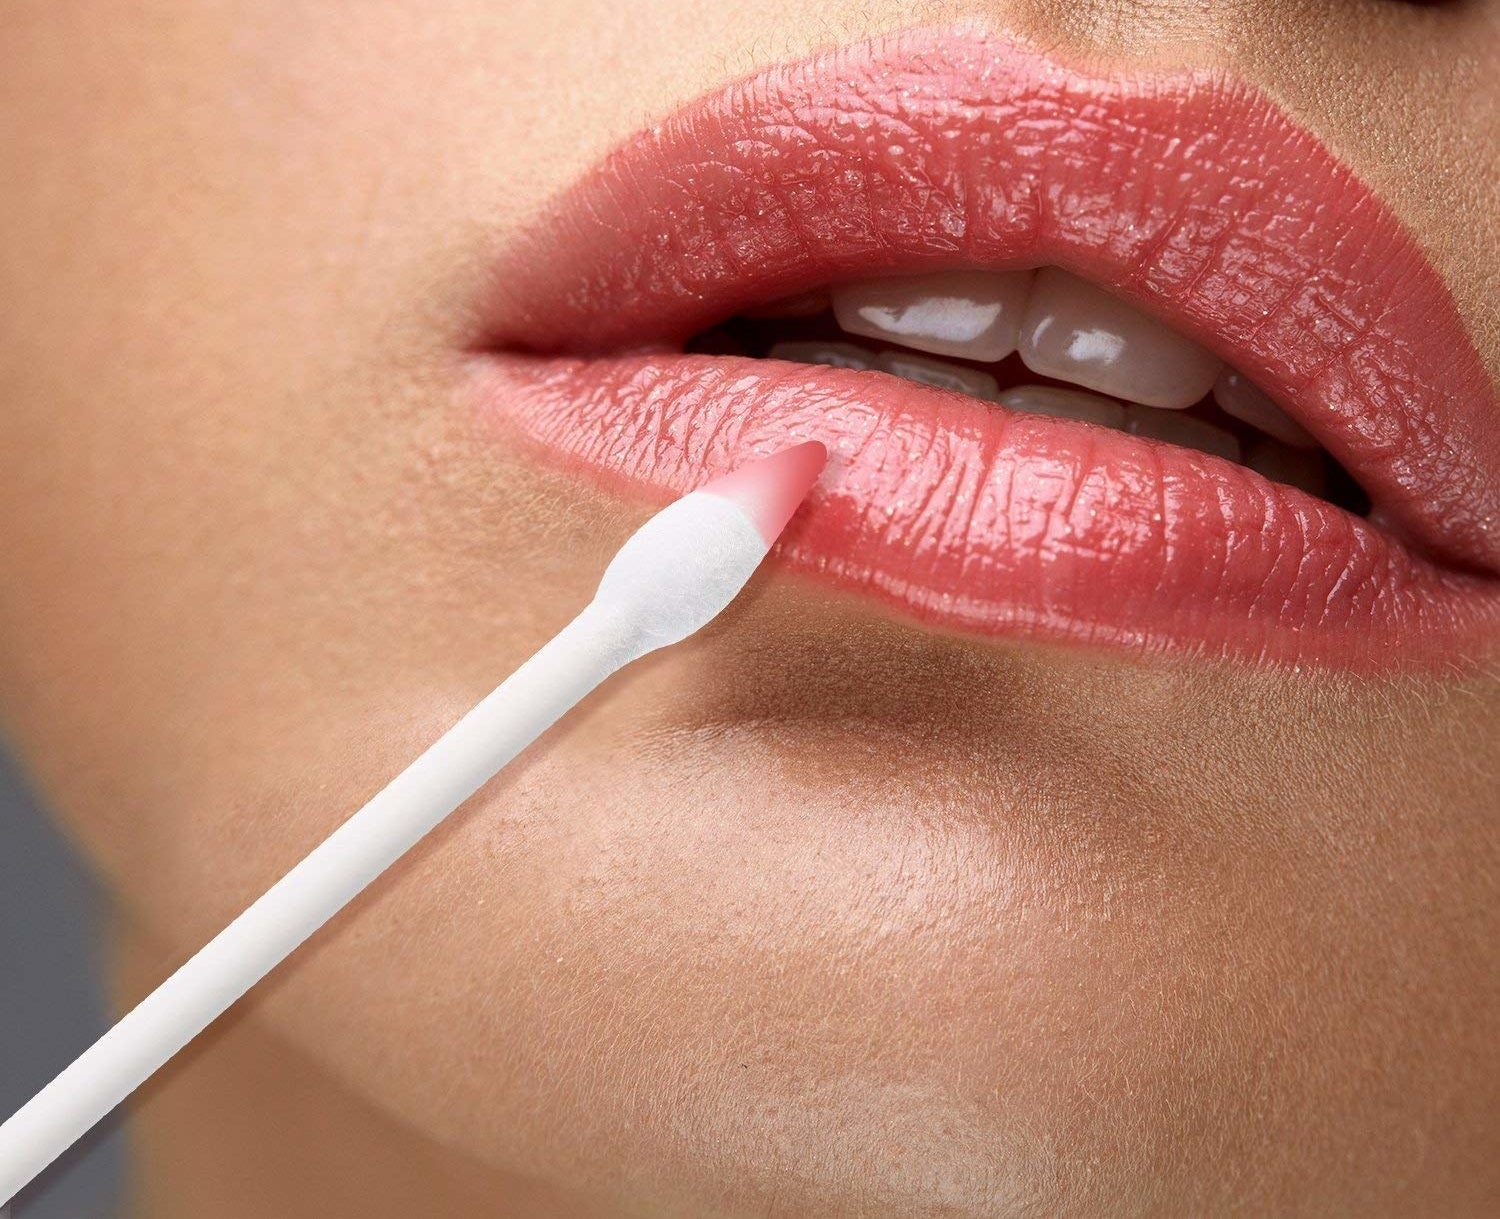 Model using the double-tipped cotton swab to fix their lipstick